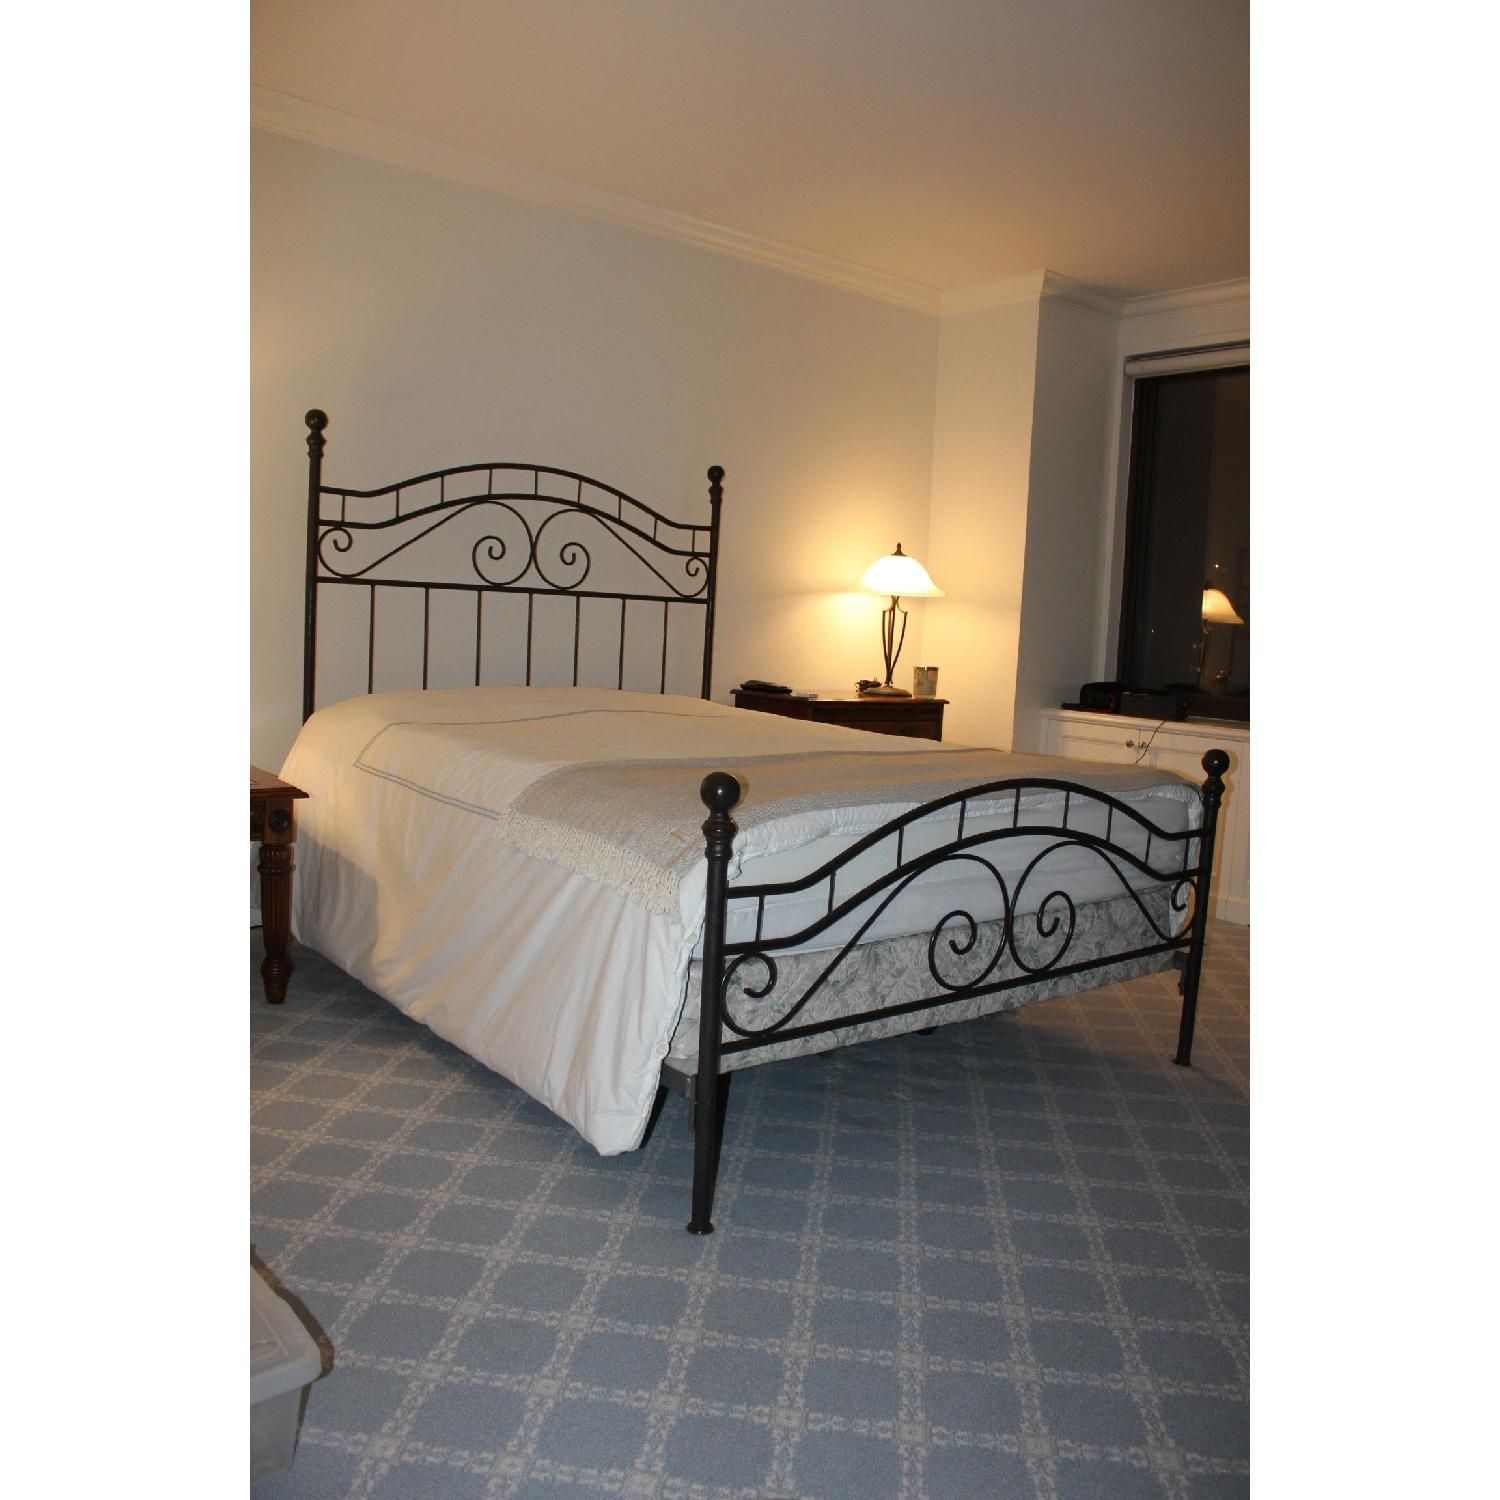 Wrought iron Queen Size Bed Frame Bed frames for sale